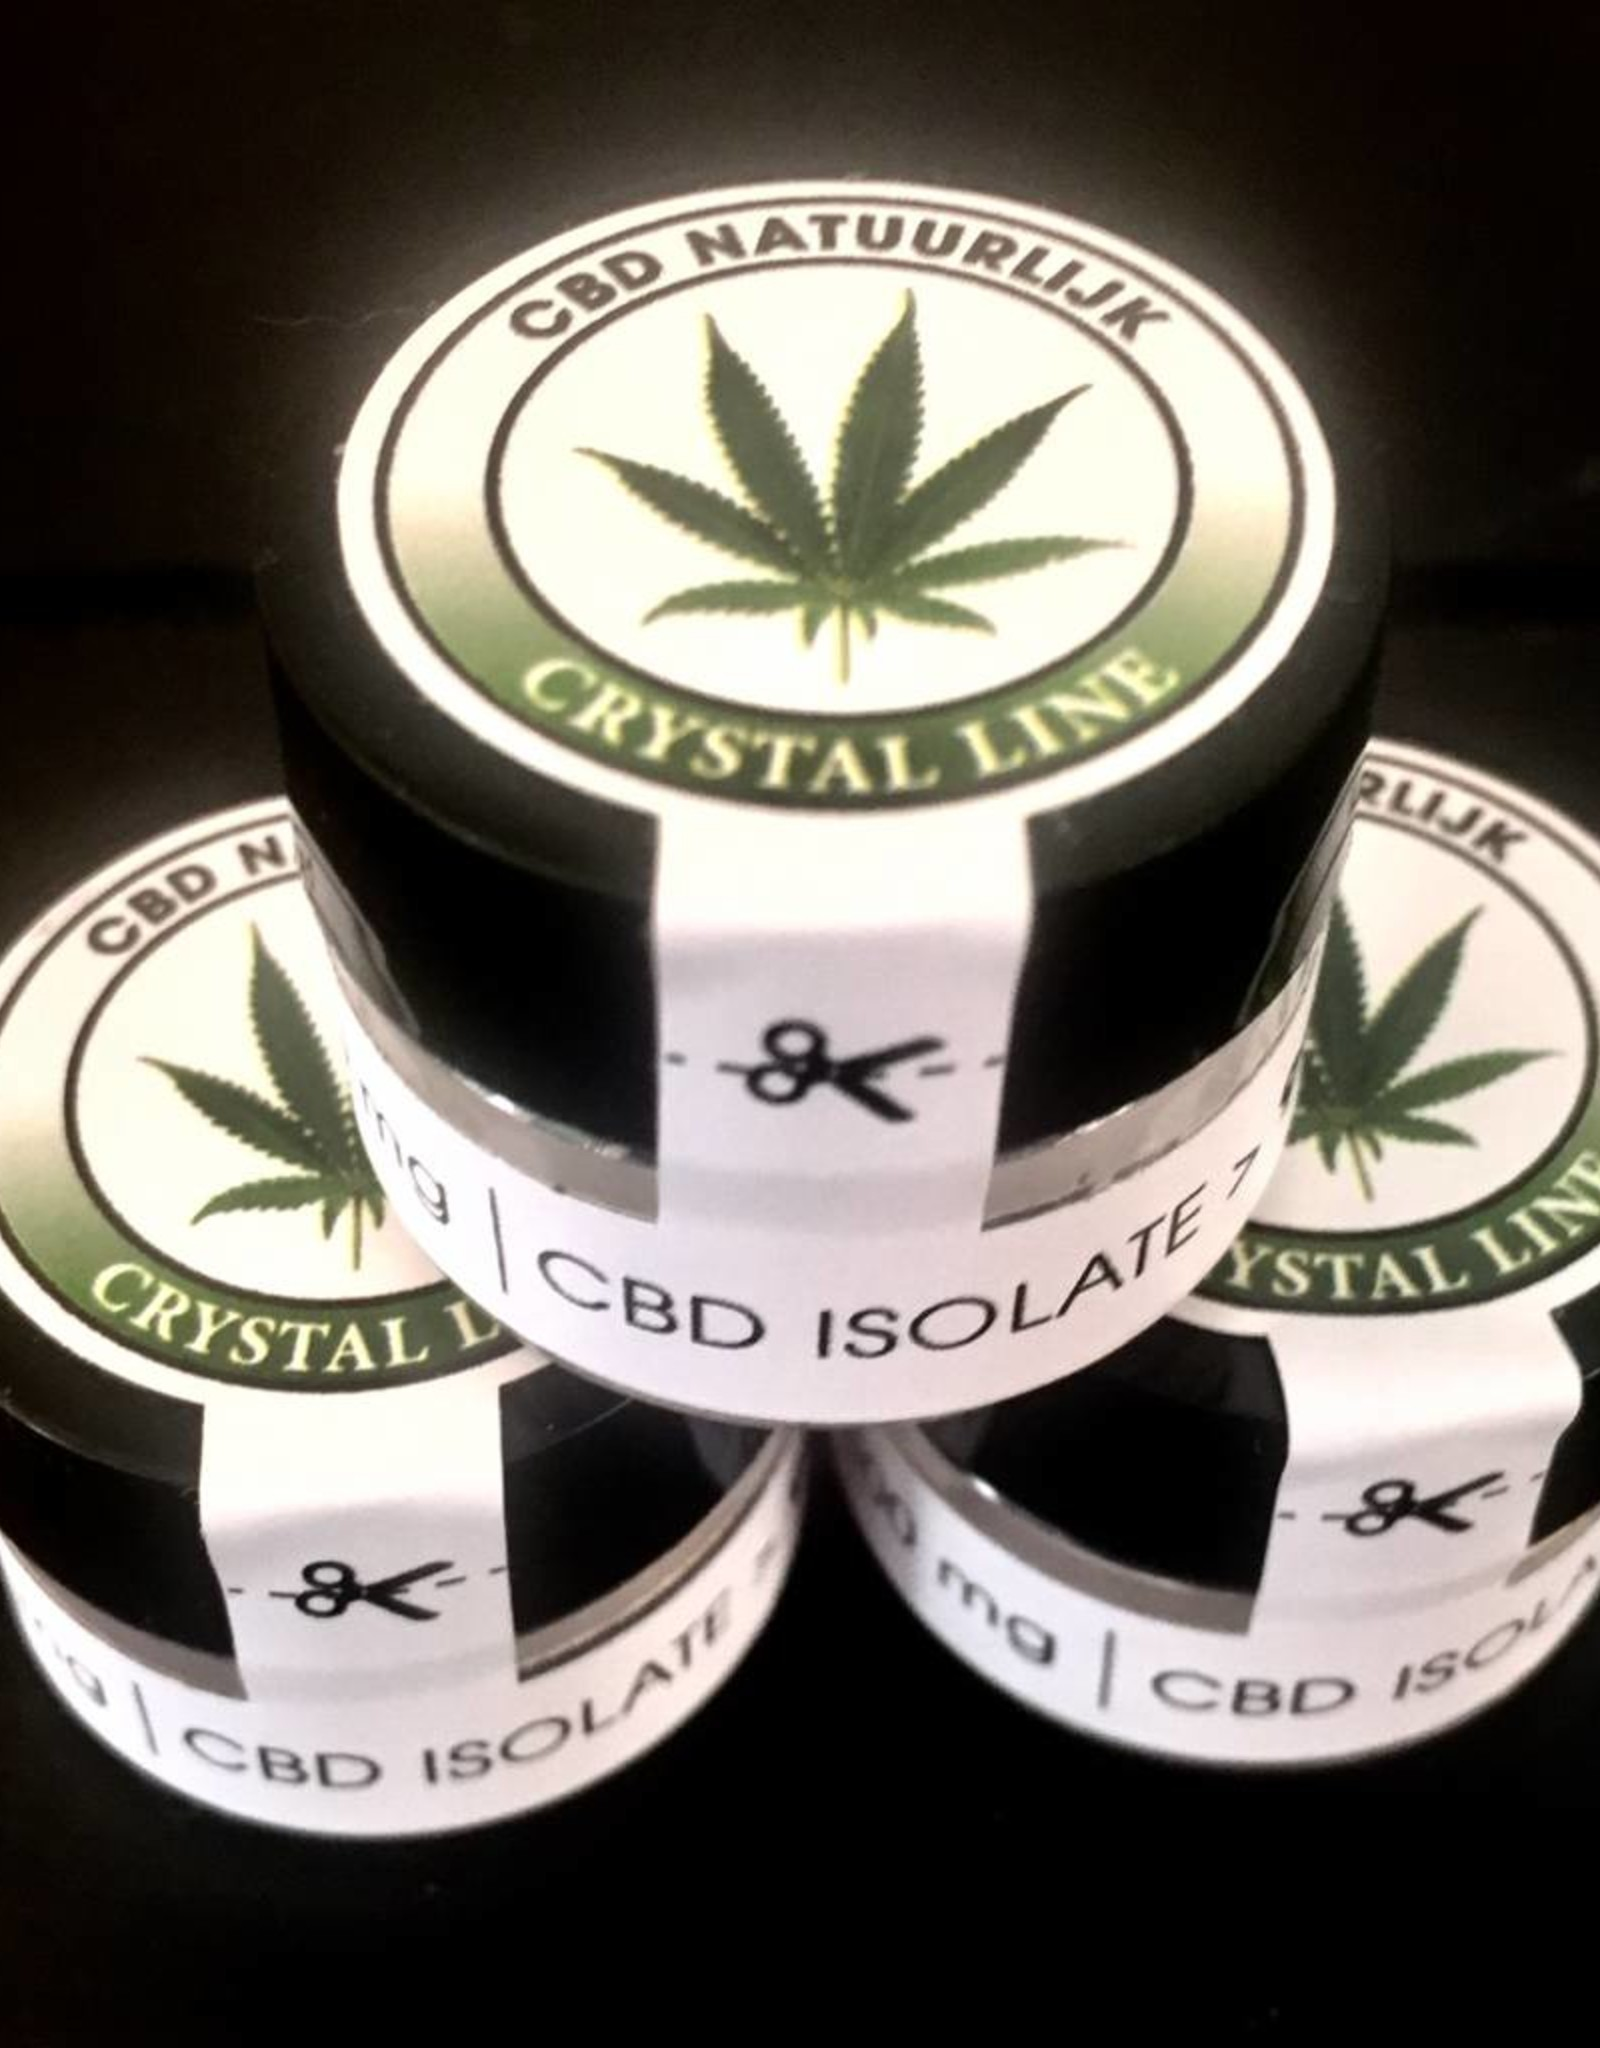 Pure CBD crystals  99%  are obtained through supercritical CO2 extraction